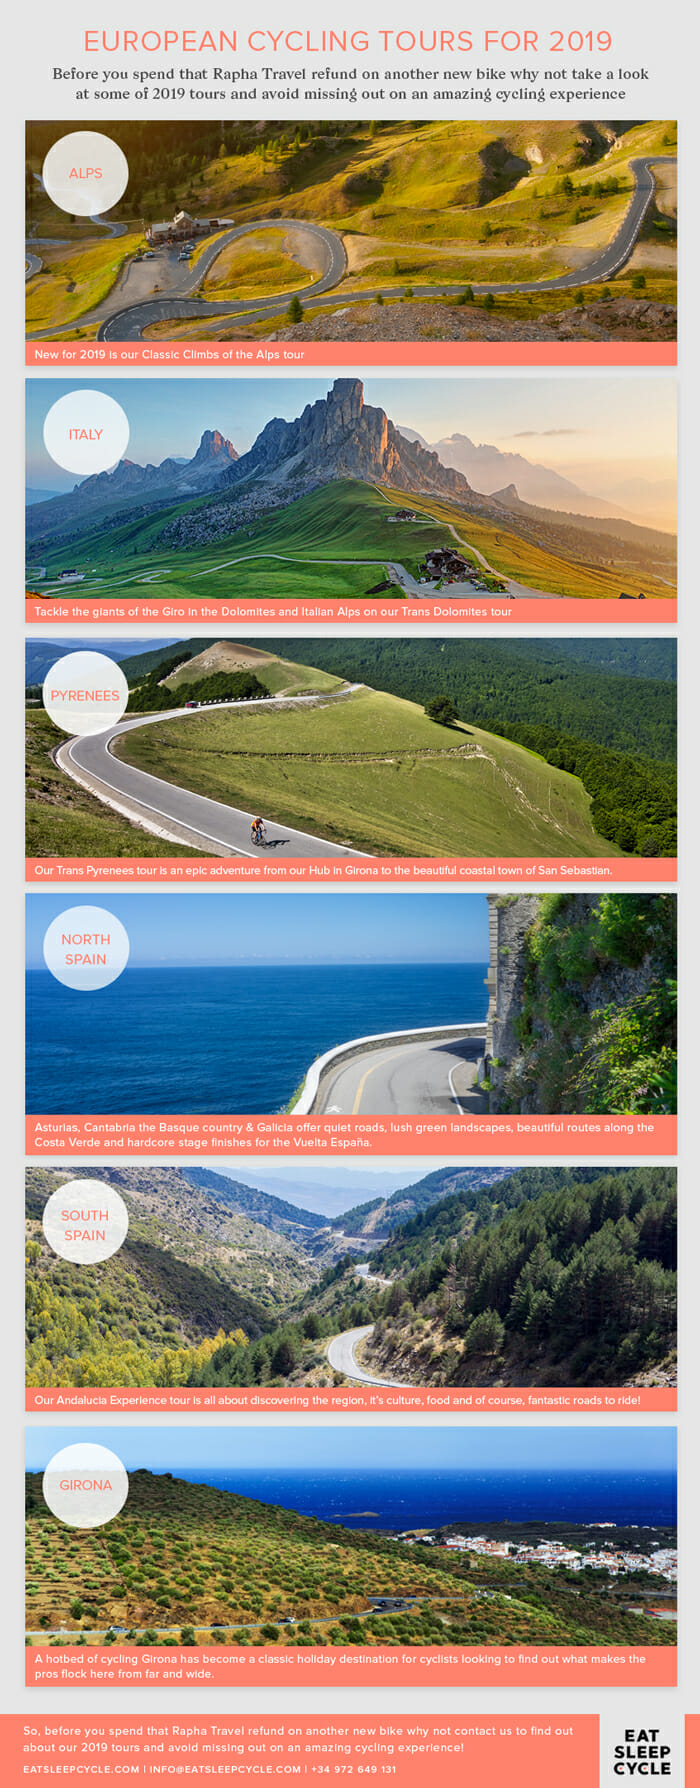 European Cycling Tours for 2019 - Eat Sleep Cycle